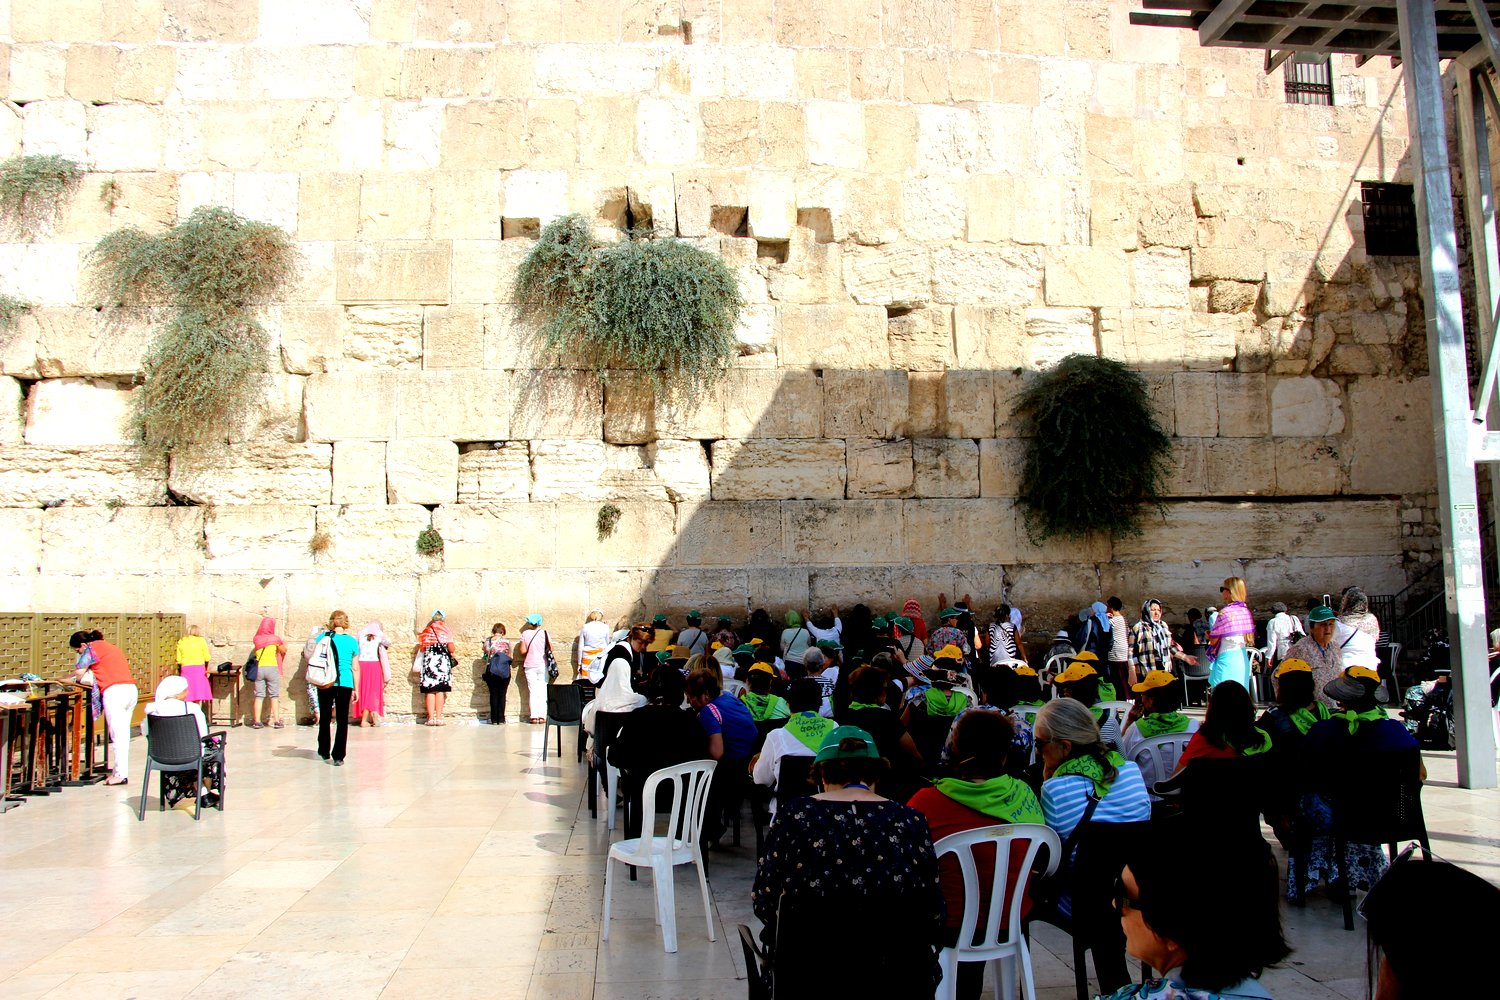 At the Western Wall, prayer is separated by men and women.